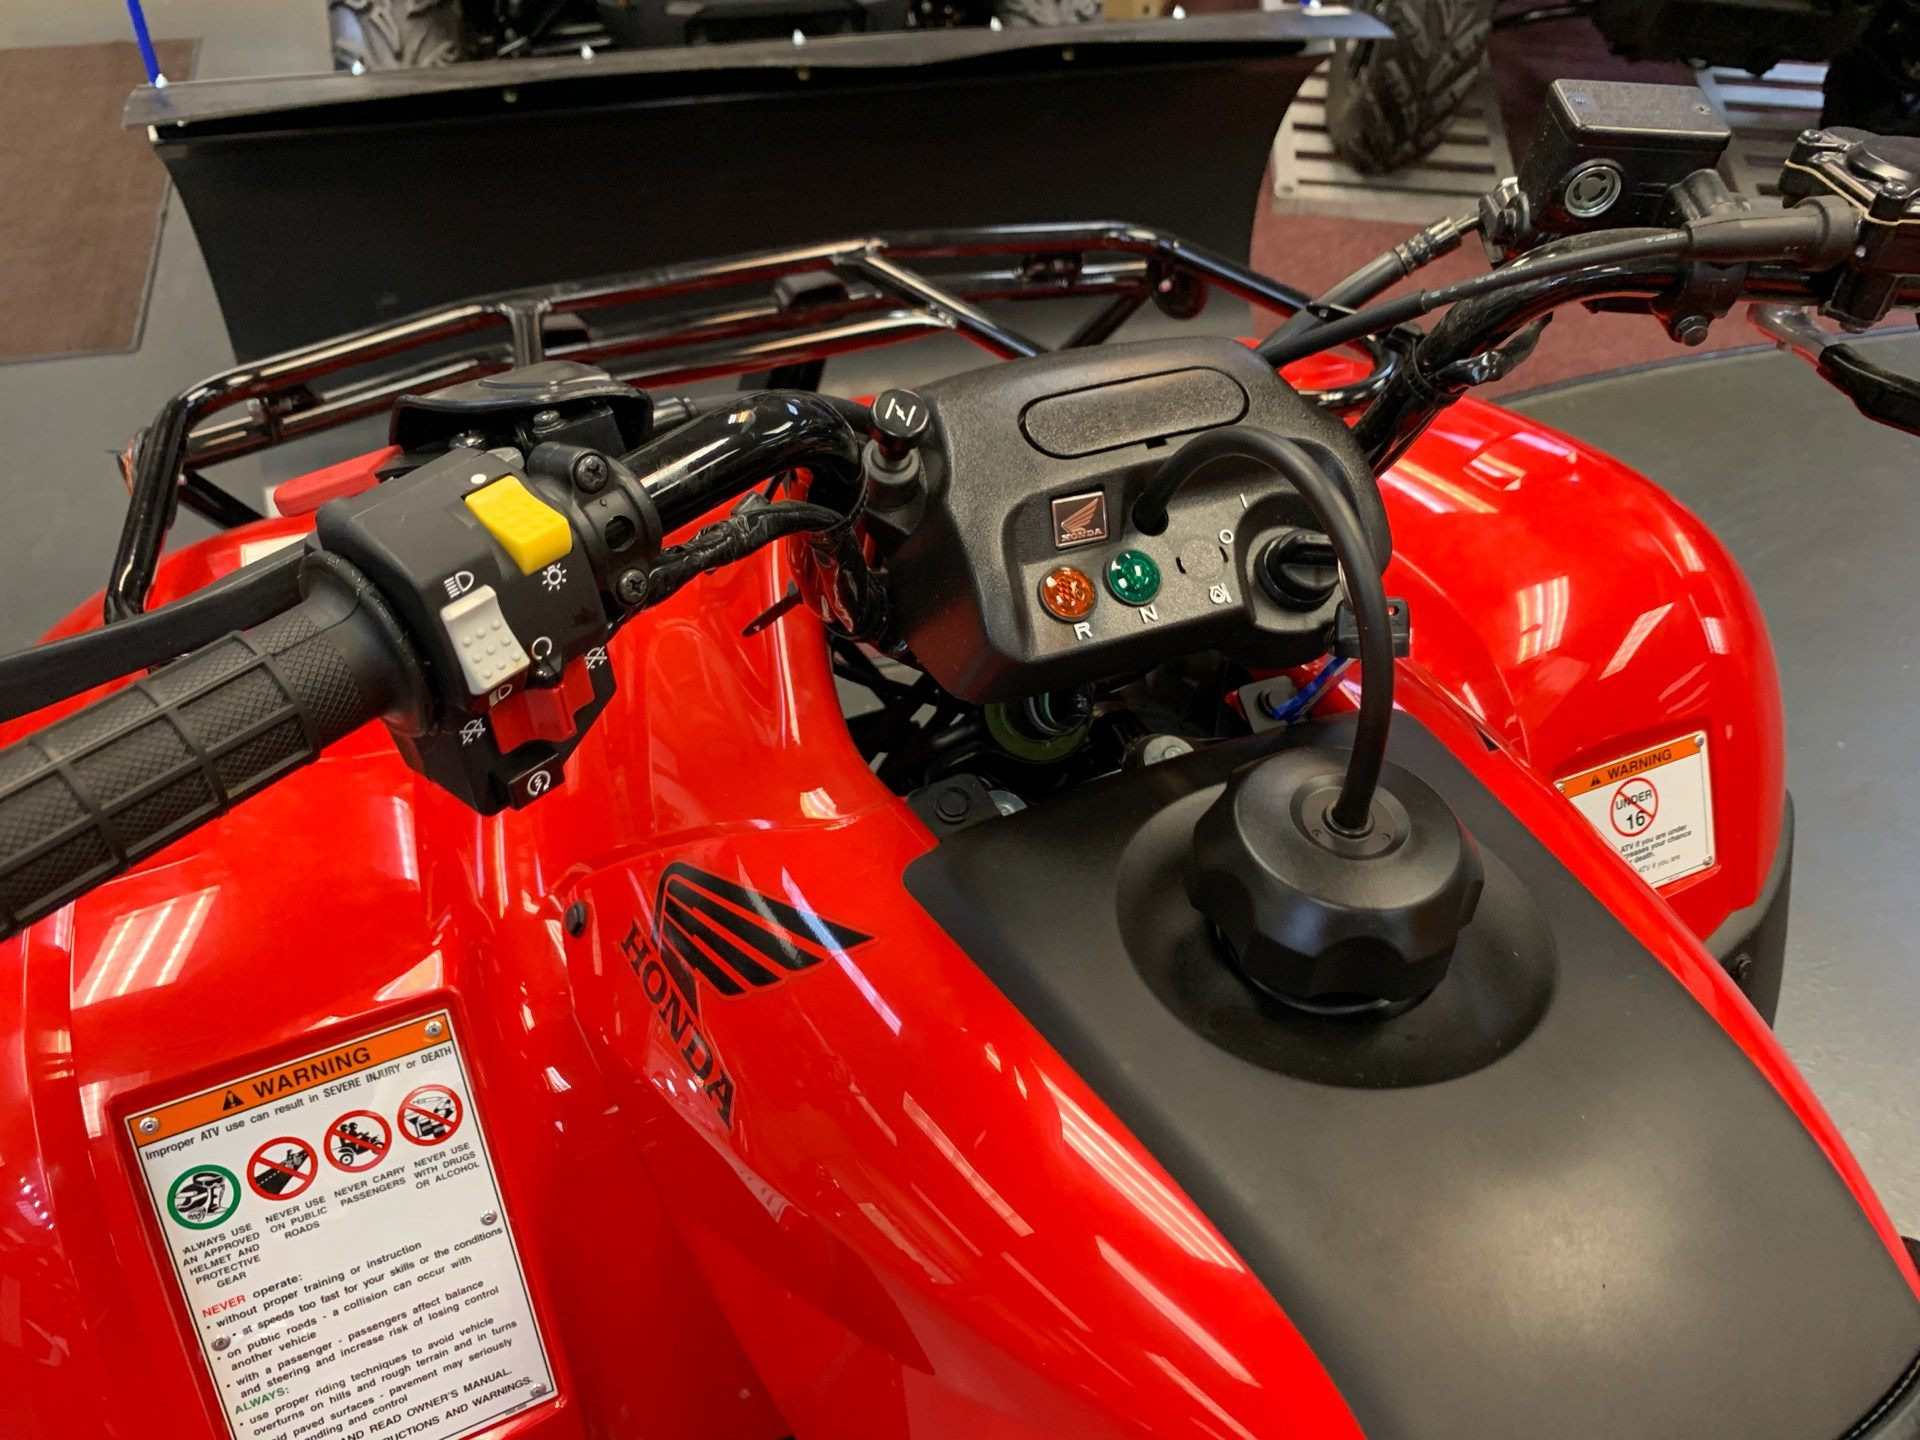 2019 Honda FourTrax Recon 6